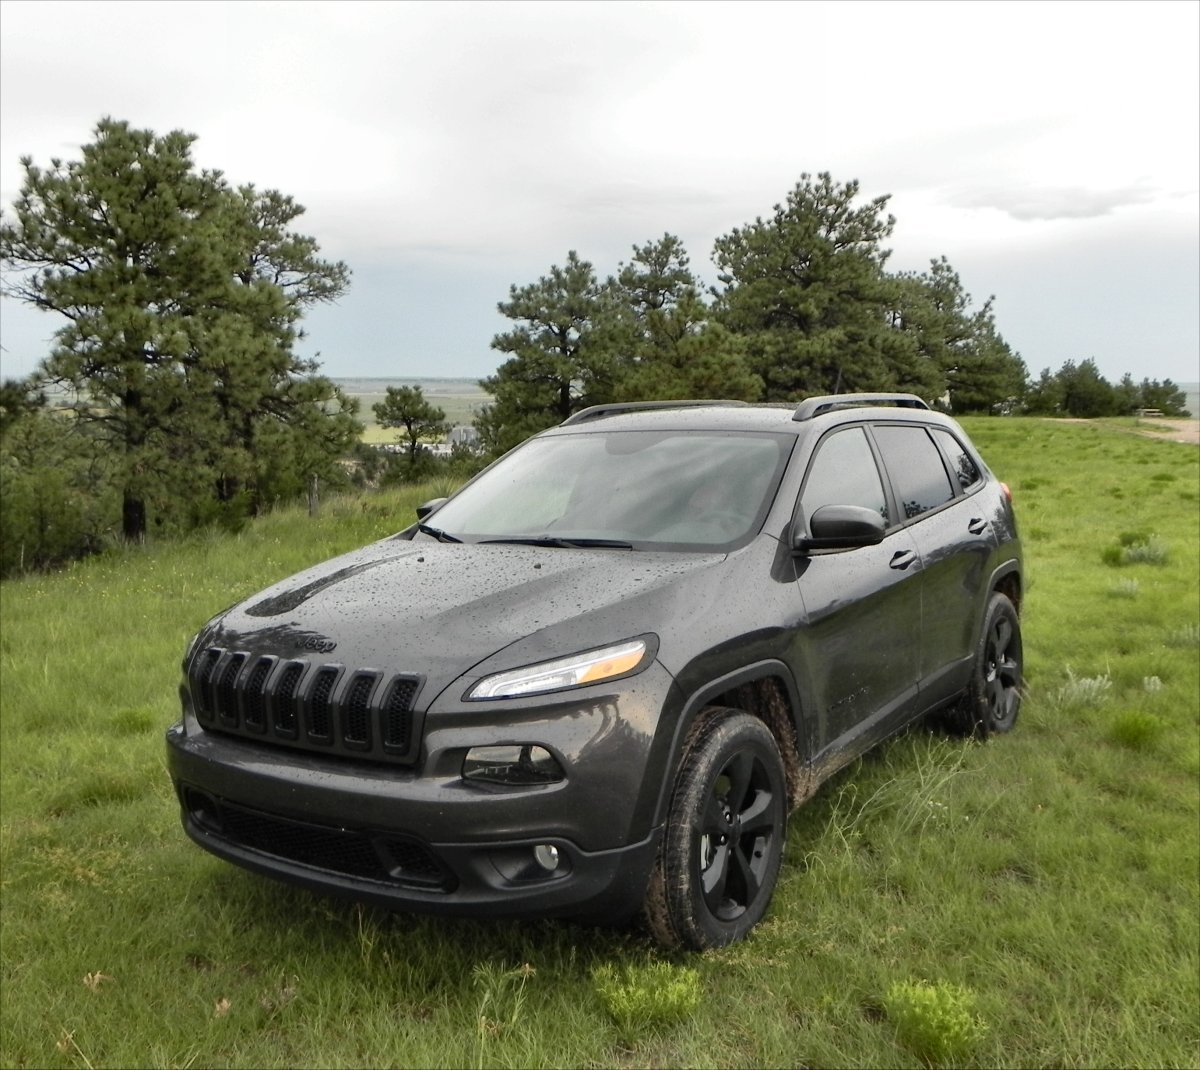 Jeep Patriot Warranty 2015 Jeep Cherokee - iSeeCars.com